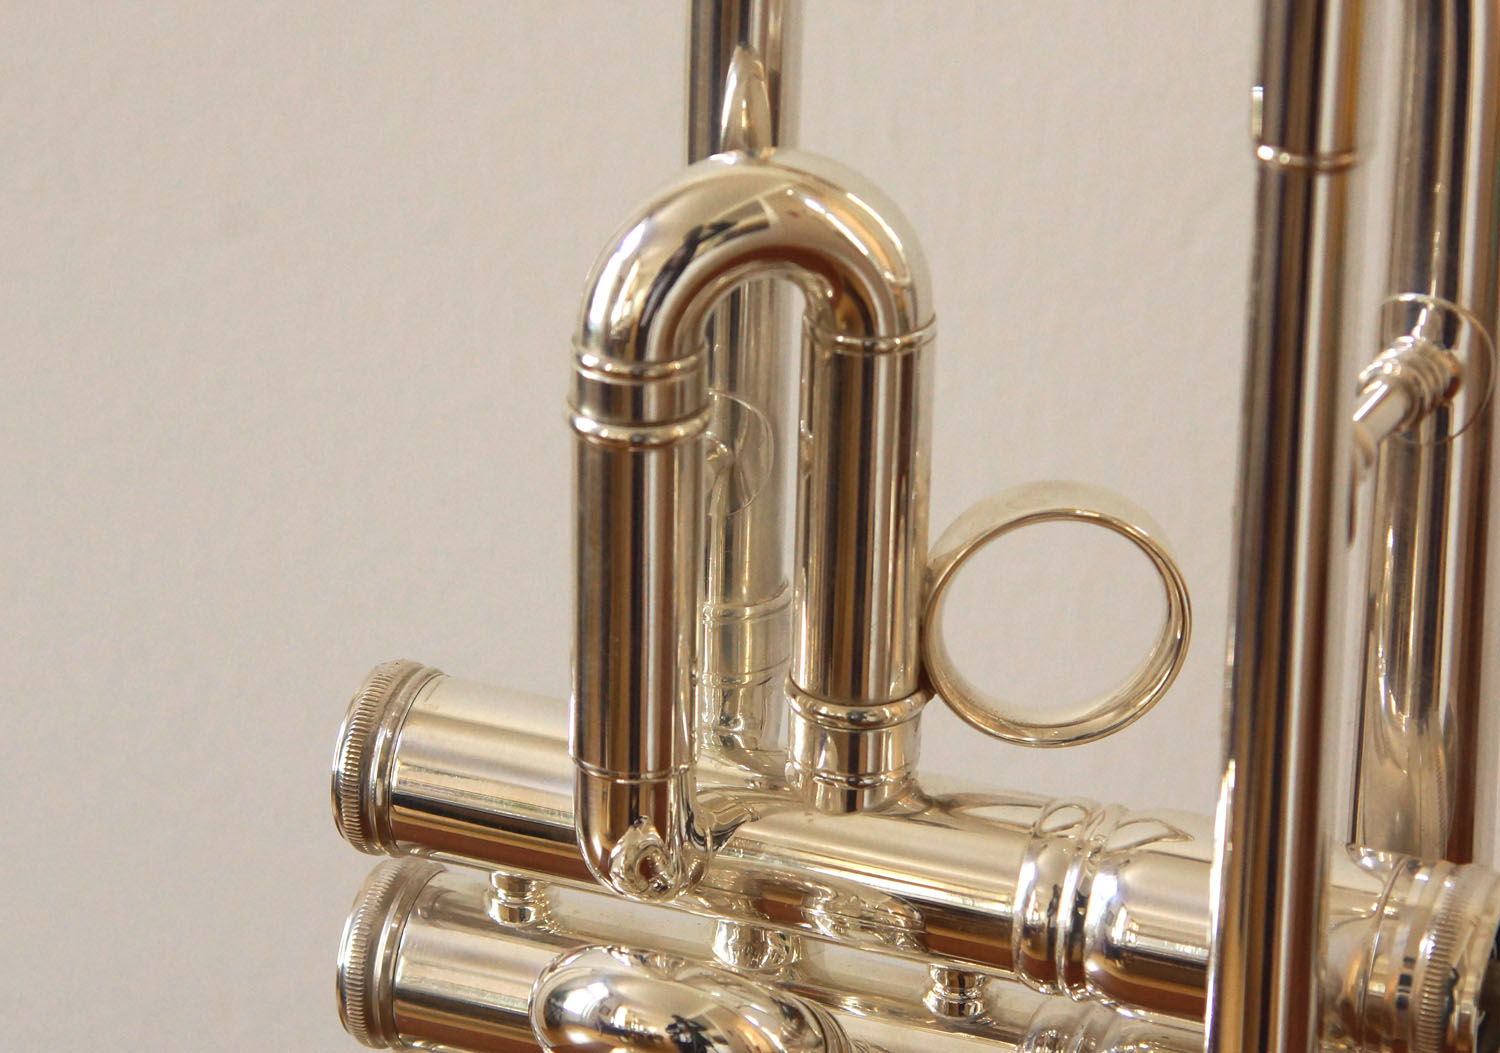 trumpetscout_conn-1b-vintage-one-1